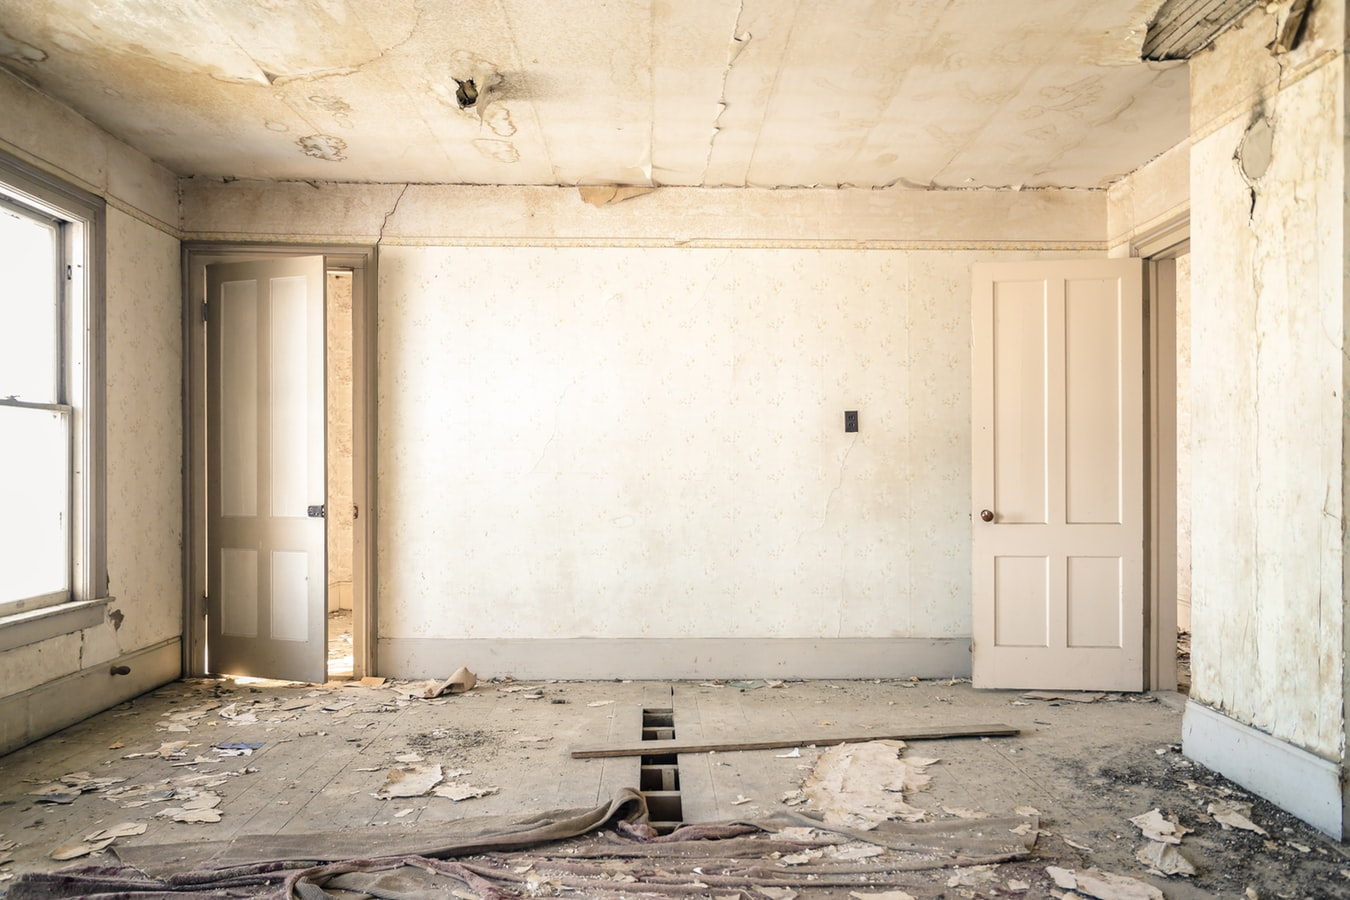 Areas You Should Consider Renovating Before Listing Your Property